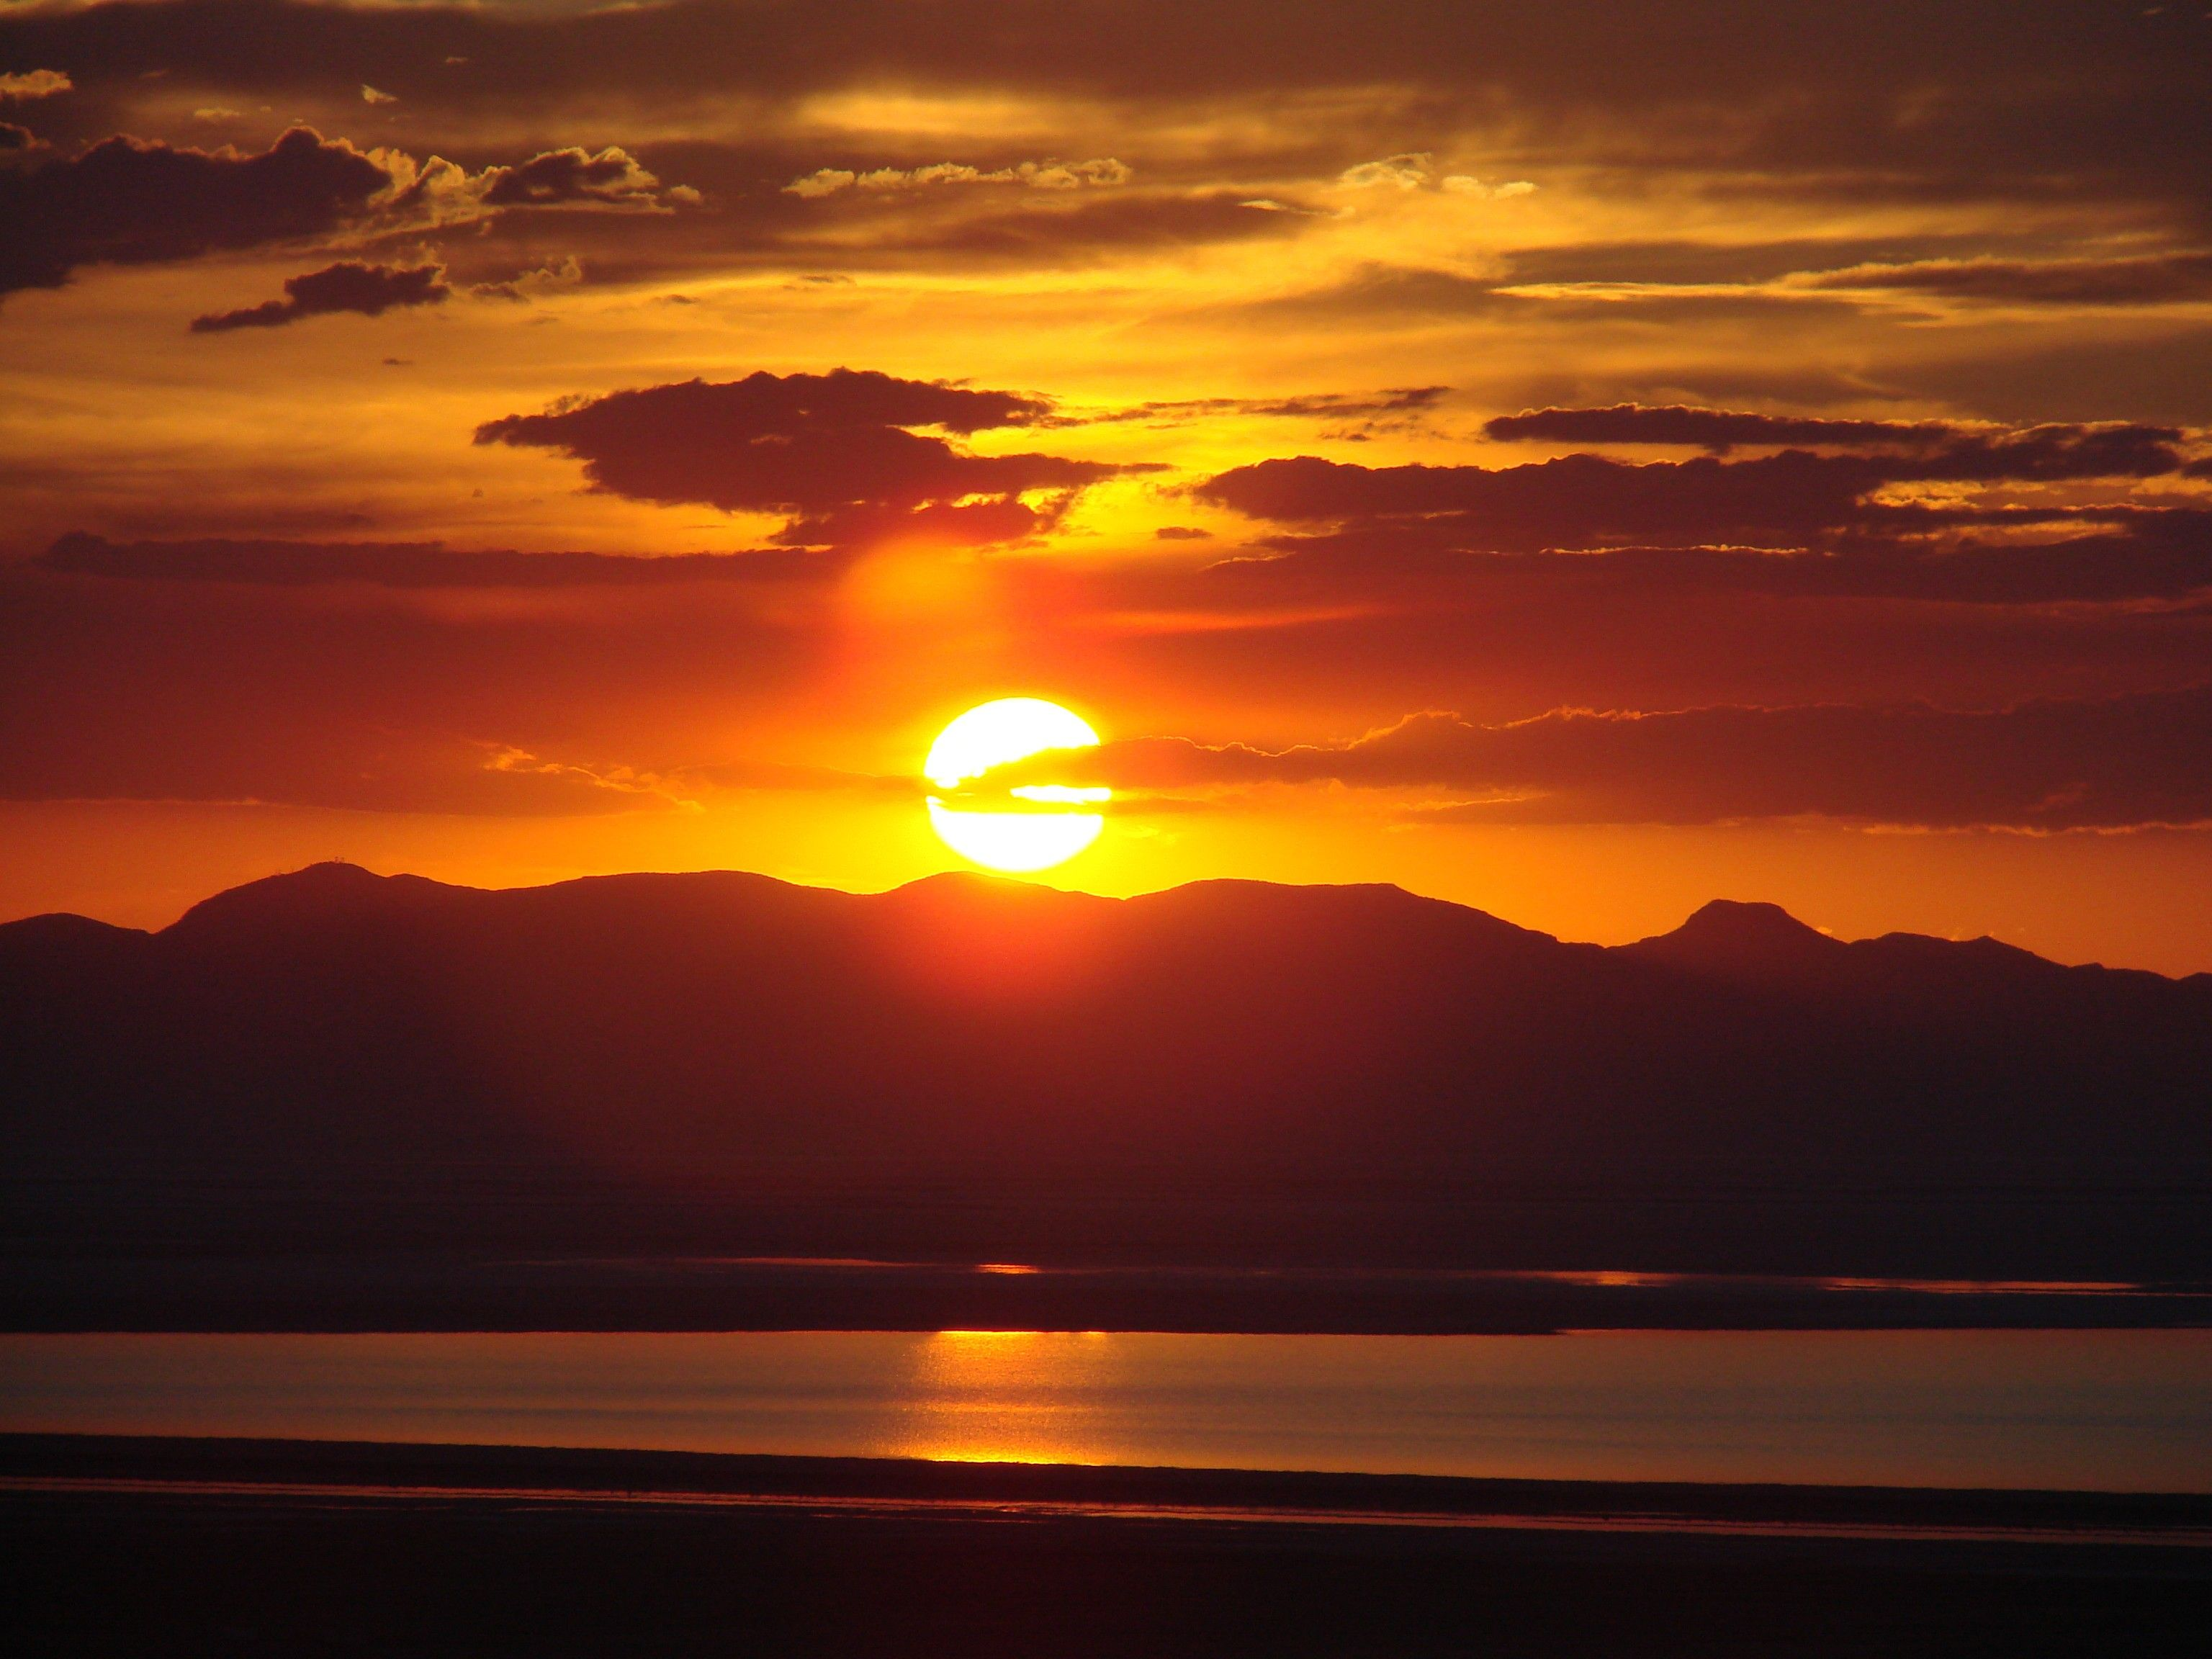 The sun sets behind mountains and the Great Salt Lake.